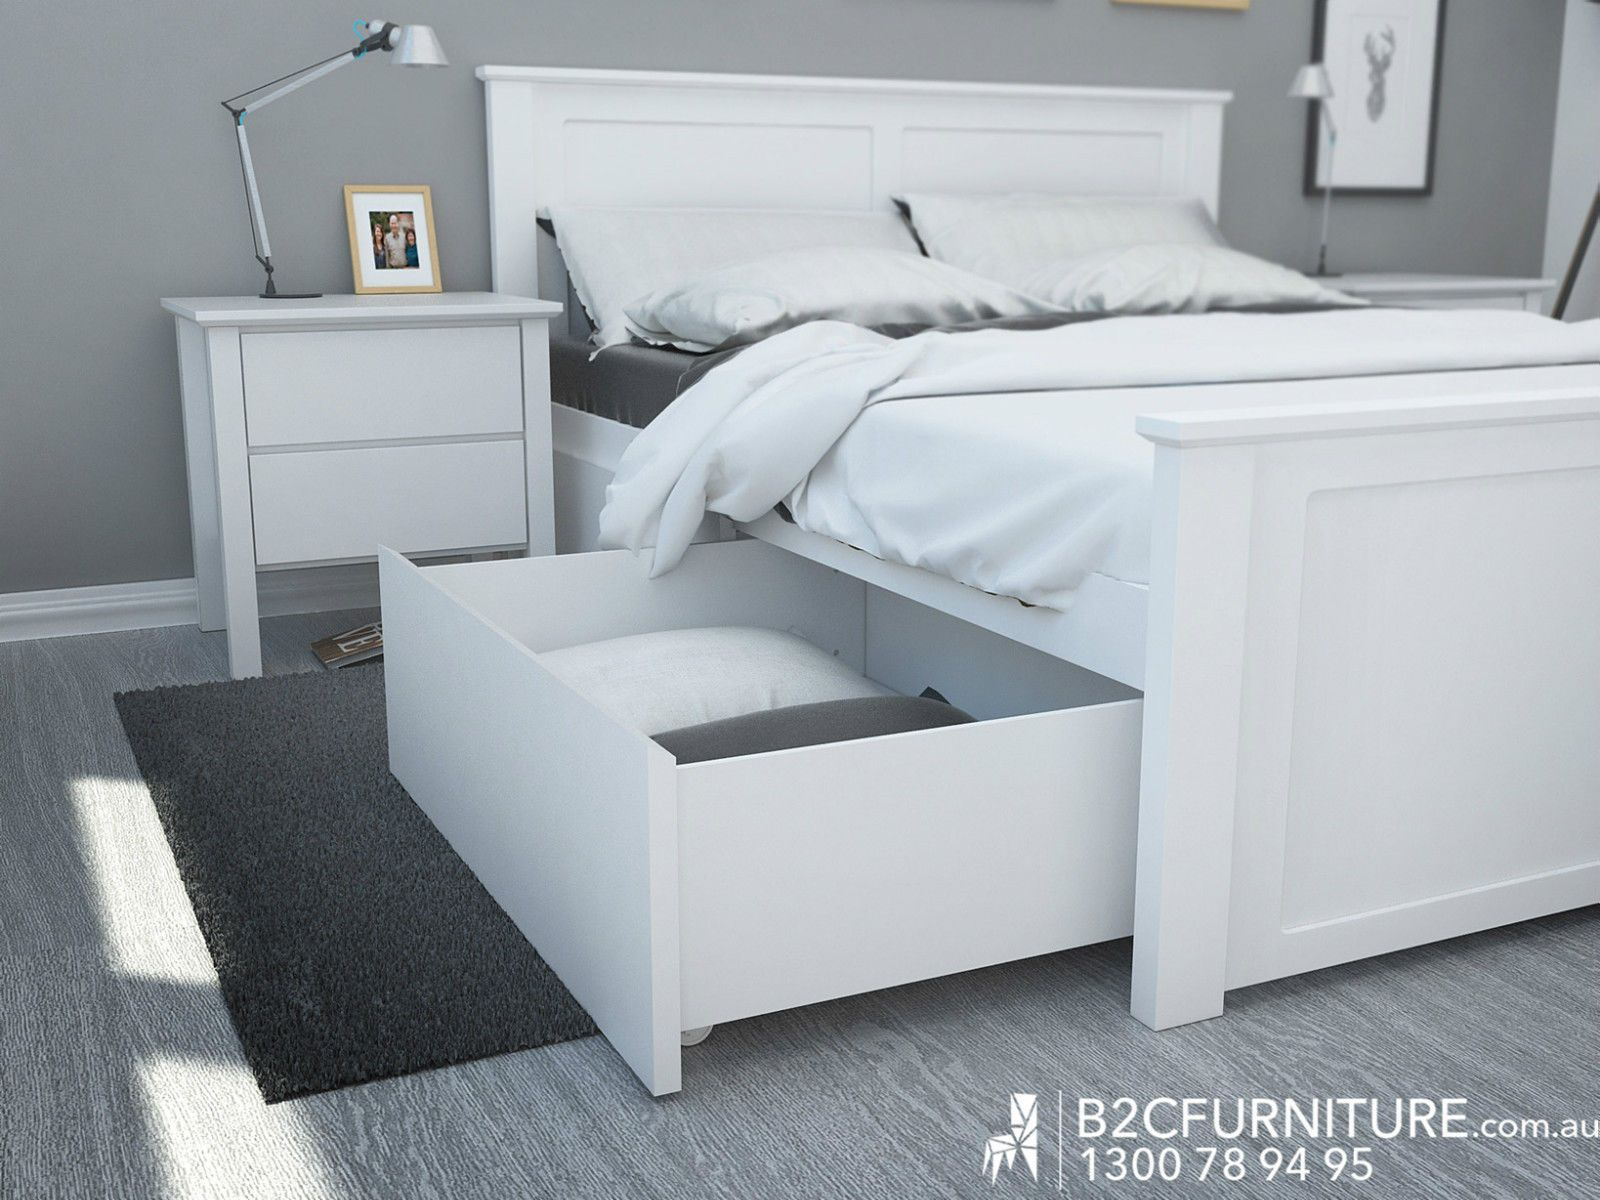 Bedroom Is One Of Most Important Room In Your House. Here, You Relax And  Rest Your Body And Mind. Therefore, Itu0027s Important To Make Your Bedroom As  ...